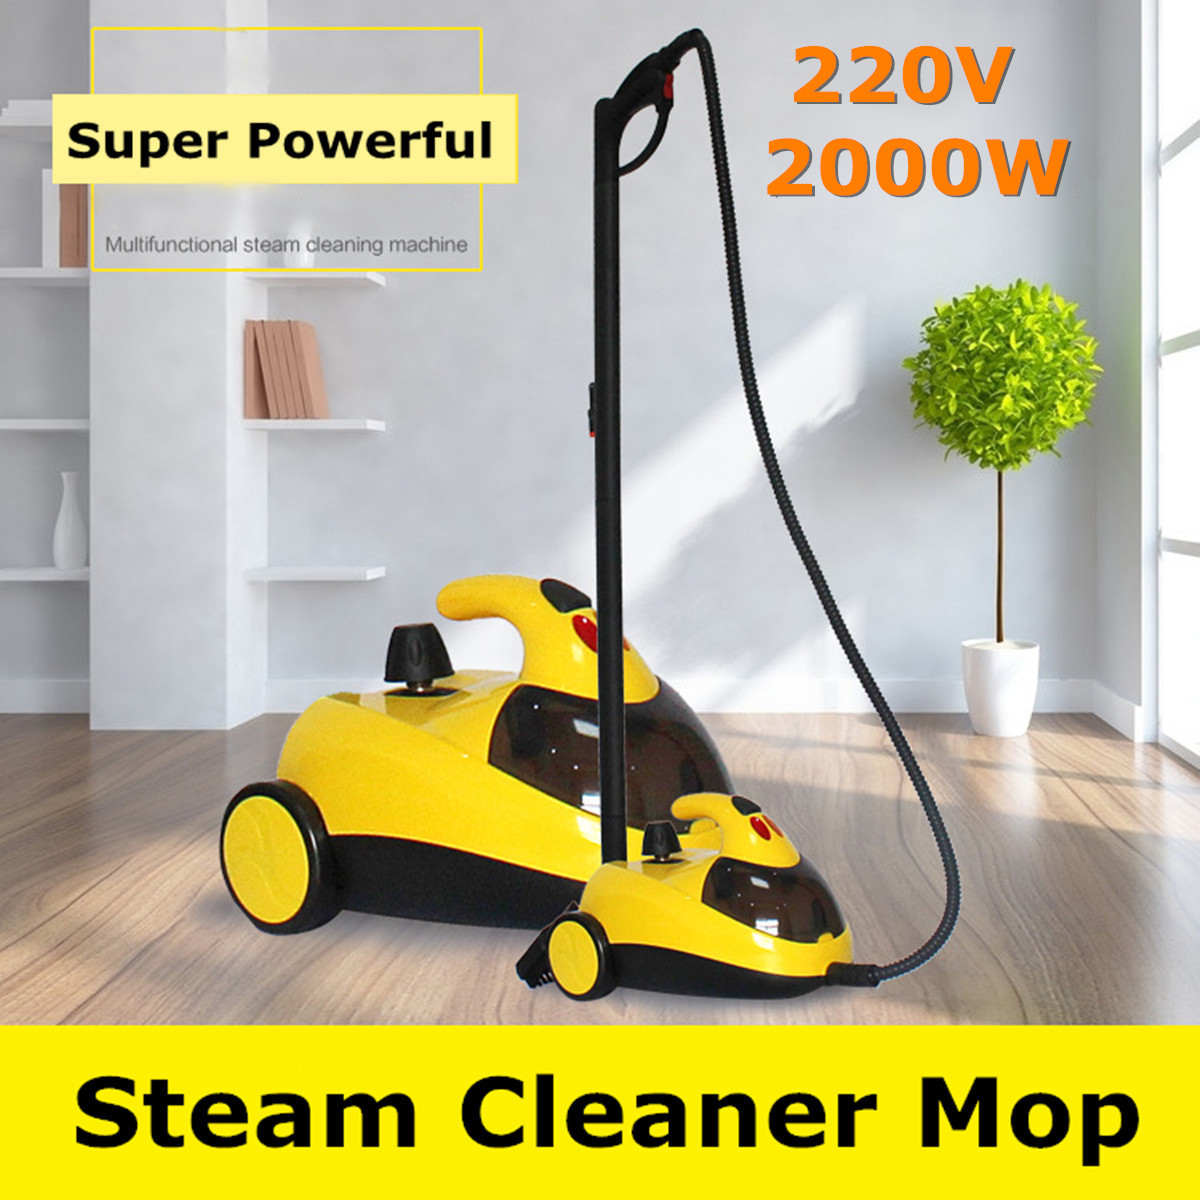 Floor Carpet Cleaner 13in1 AU220V 1.5L4.0 2000W Bar High Pressure Steam Washer Cleaning Machine 360 Wheel for Clean Bathroom CarFloor Carpet Cleaner 13in1 AU220V 1.5L4.0 2000W Bar High Pressure Steam Washer Cleaning Machine 360 Wheel for Clean Bathroom Car